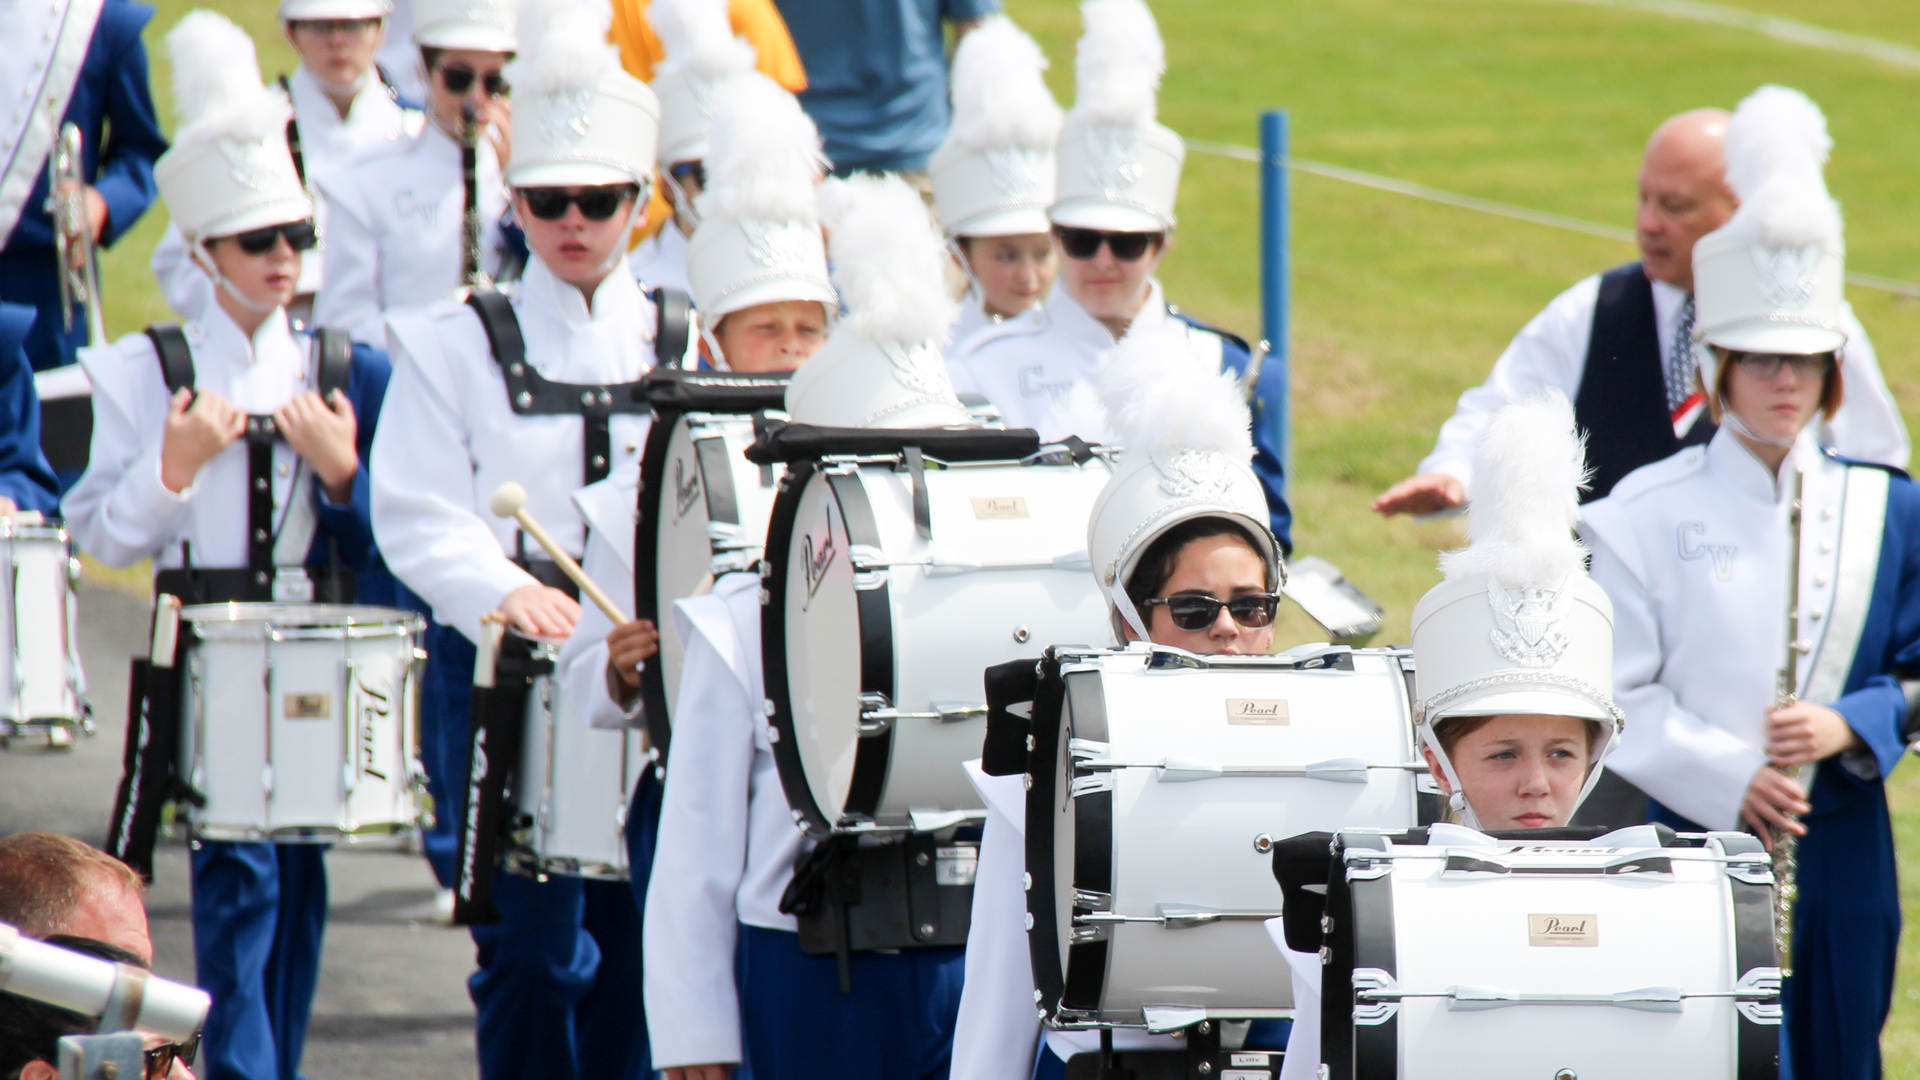 Band_Picture 6.jpg